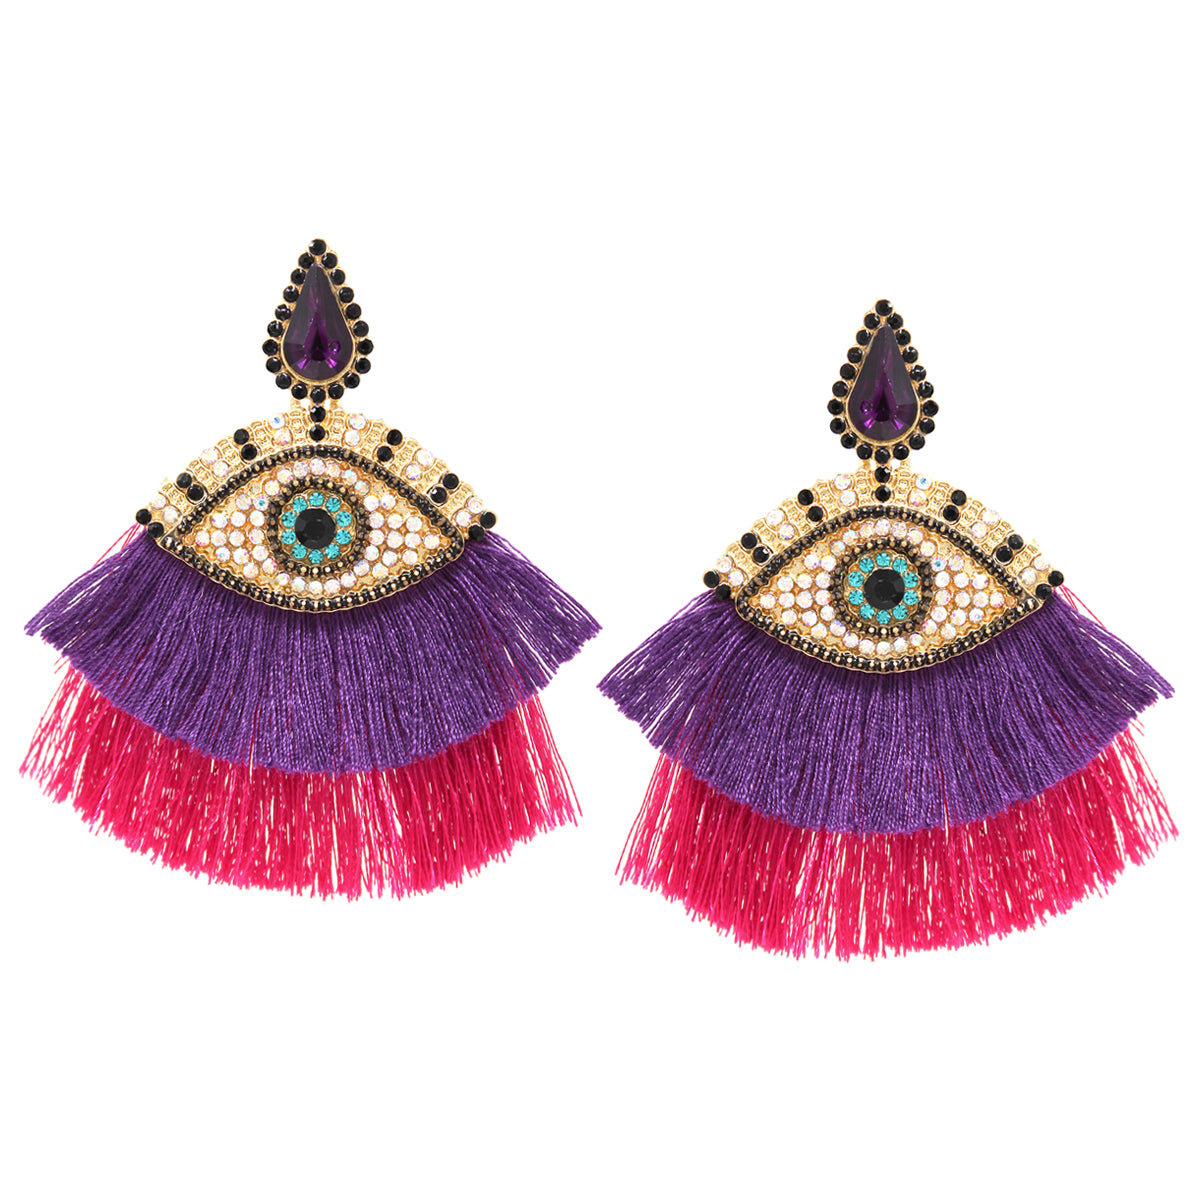 Rhinestone Pave Evil Eye With Tassel Fringe Statement Earrings